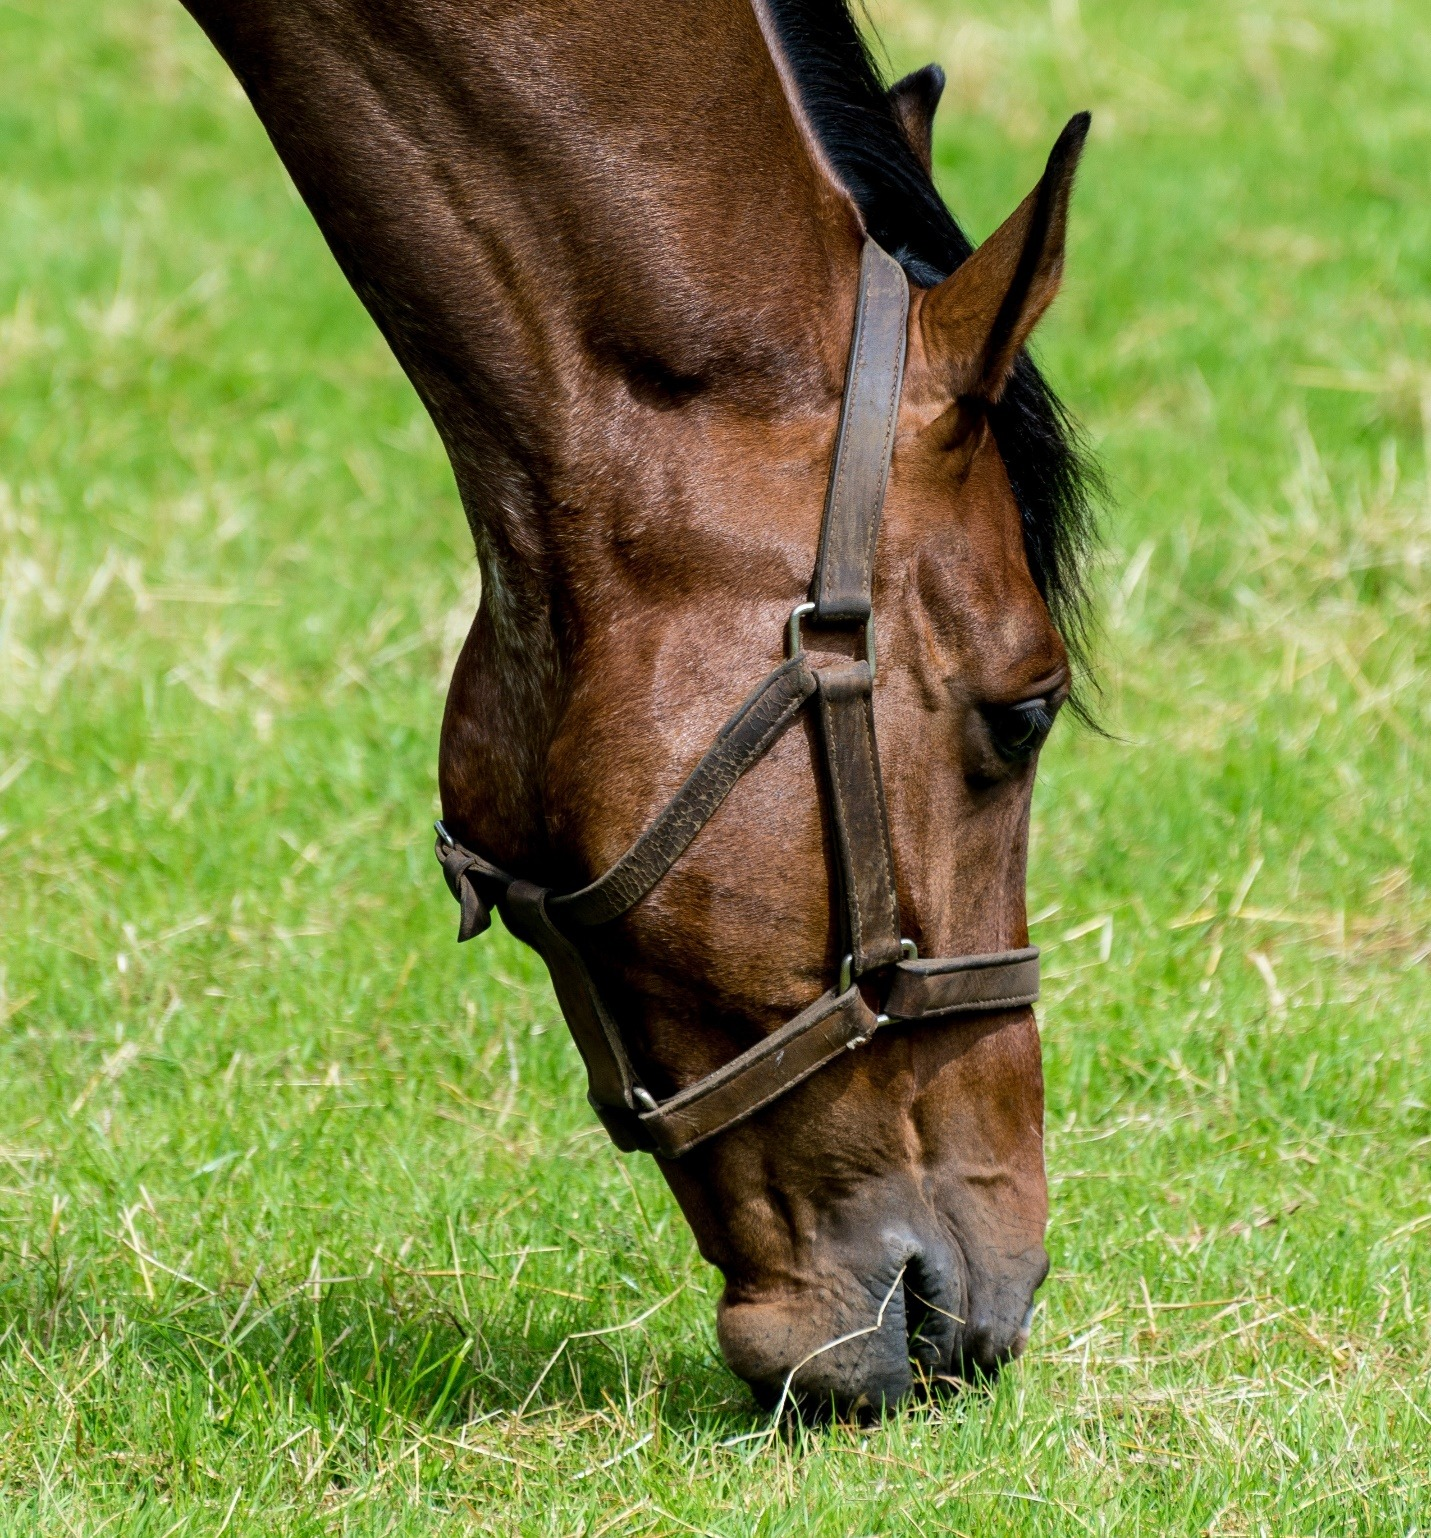 Horse grazing and chewing on grass